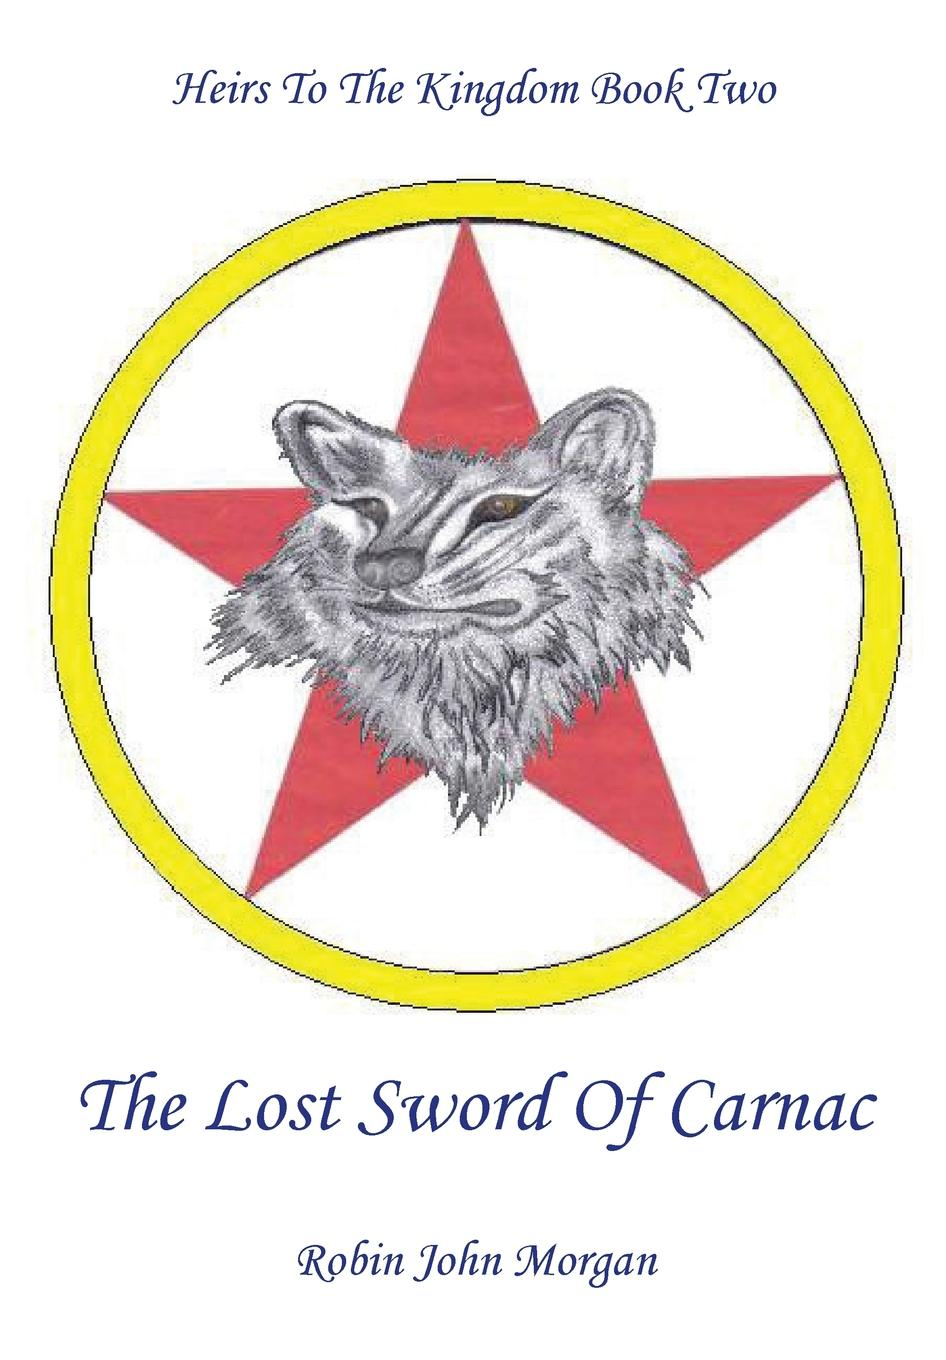 Heirs to the Kingdom part two : The Lost Sword of Carnac